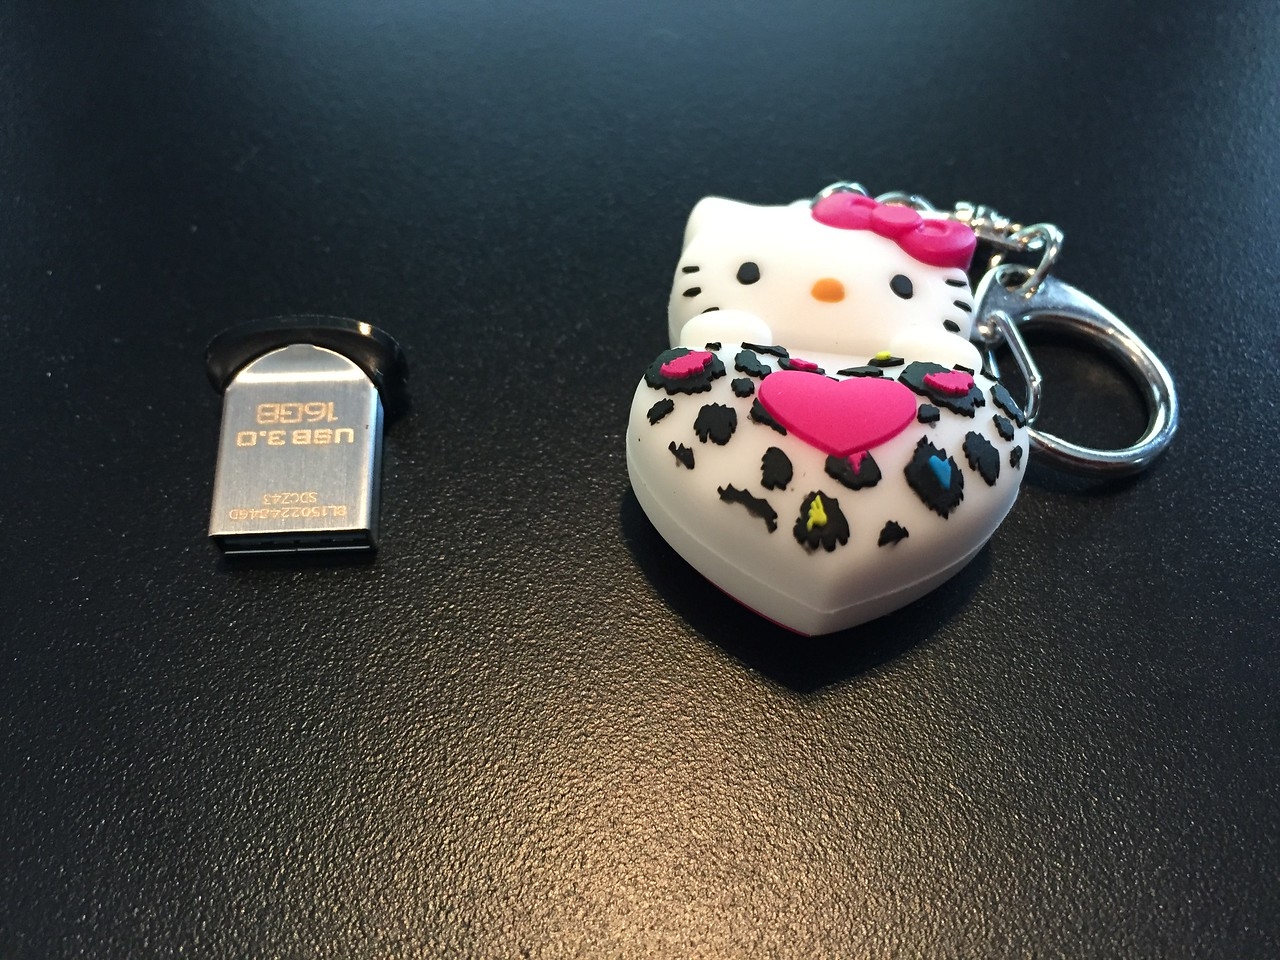 The OS will live on my beloved Hello Kitty flash drive